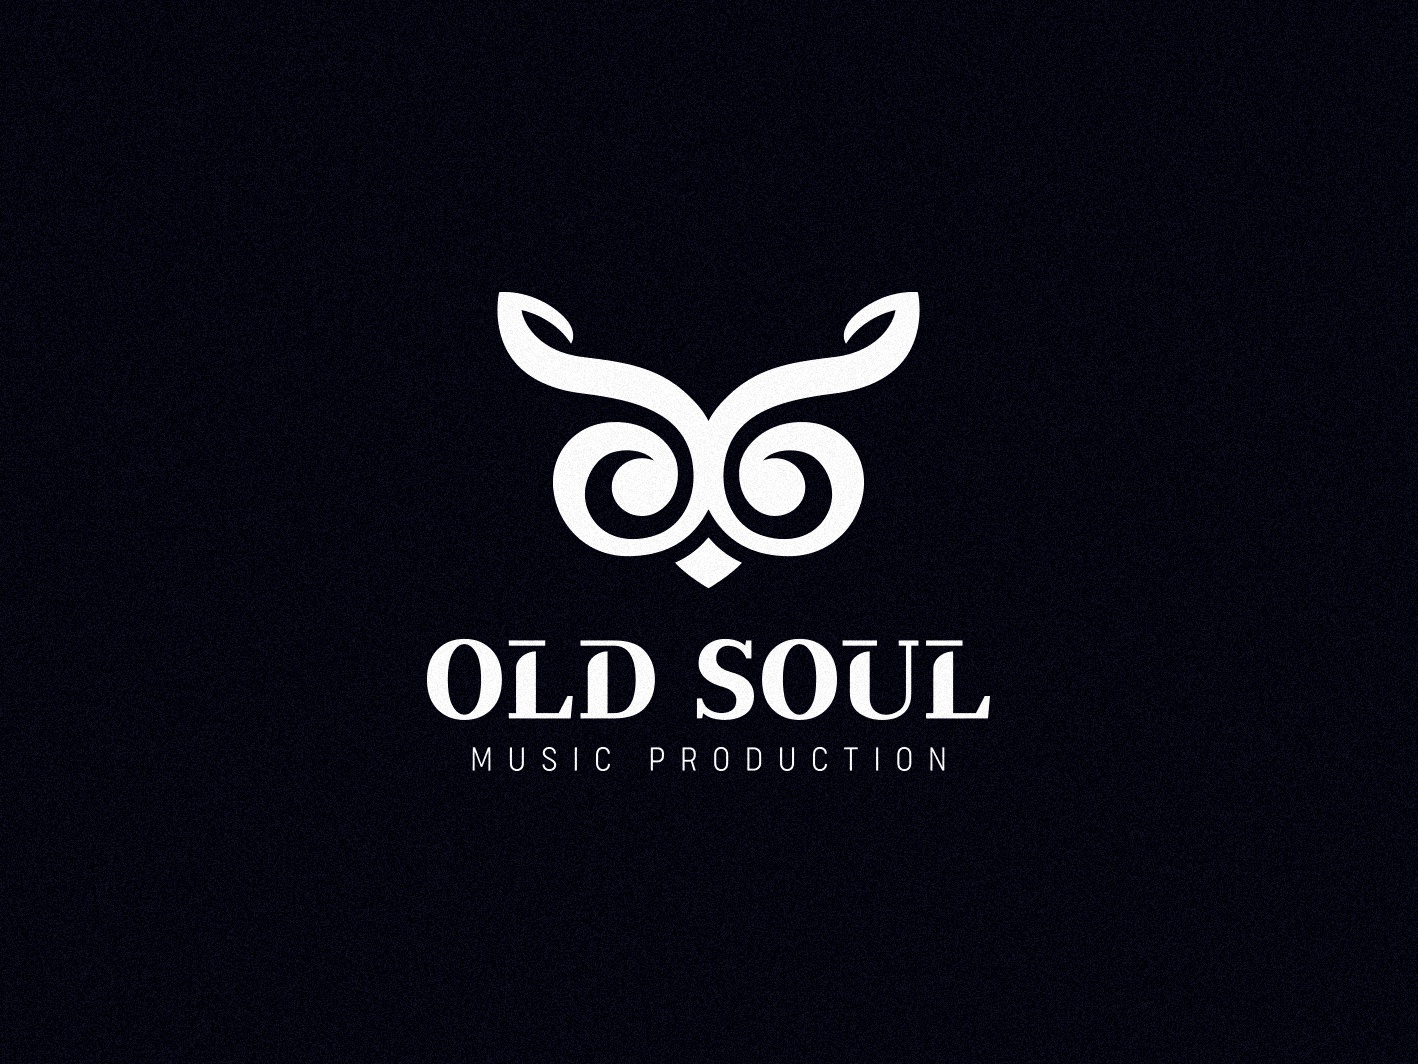 Old Soul Music Production by Sava Stoic on Dribbble